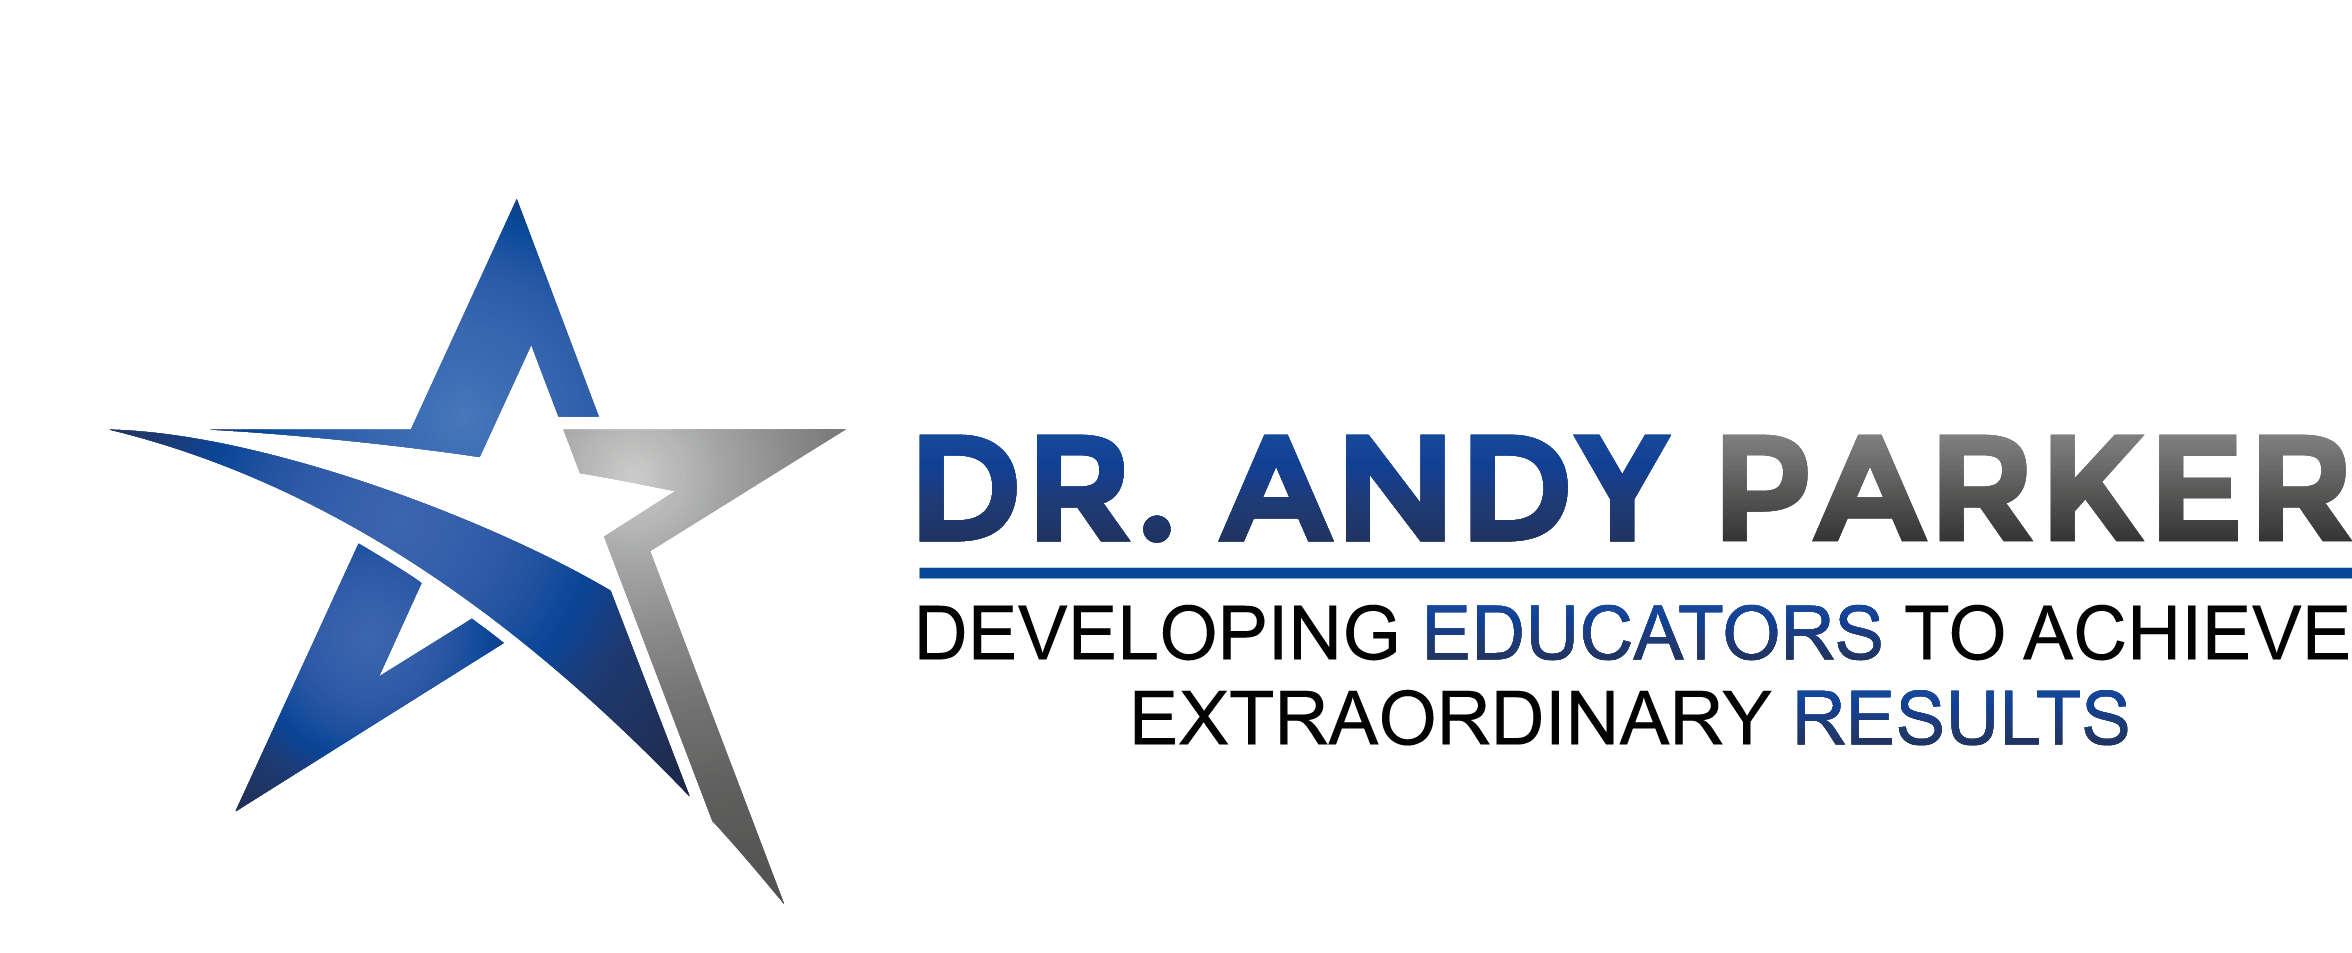 Dr. Andy Parker | Developing Educators to Achieve ...